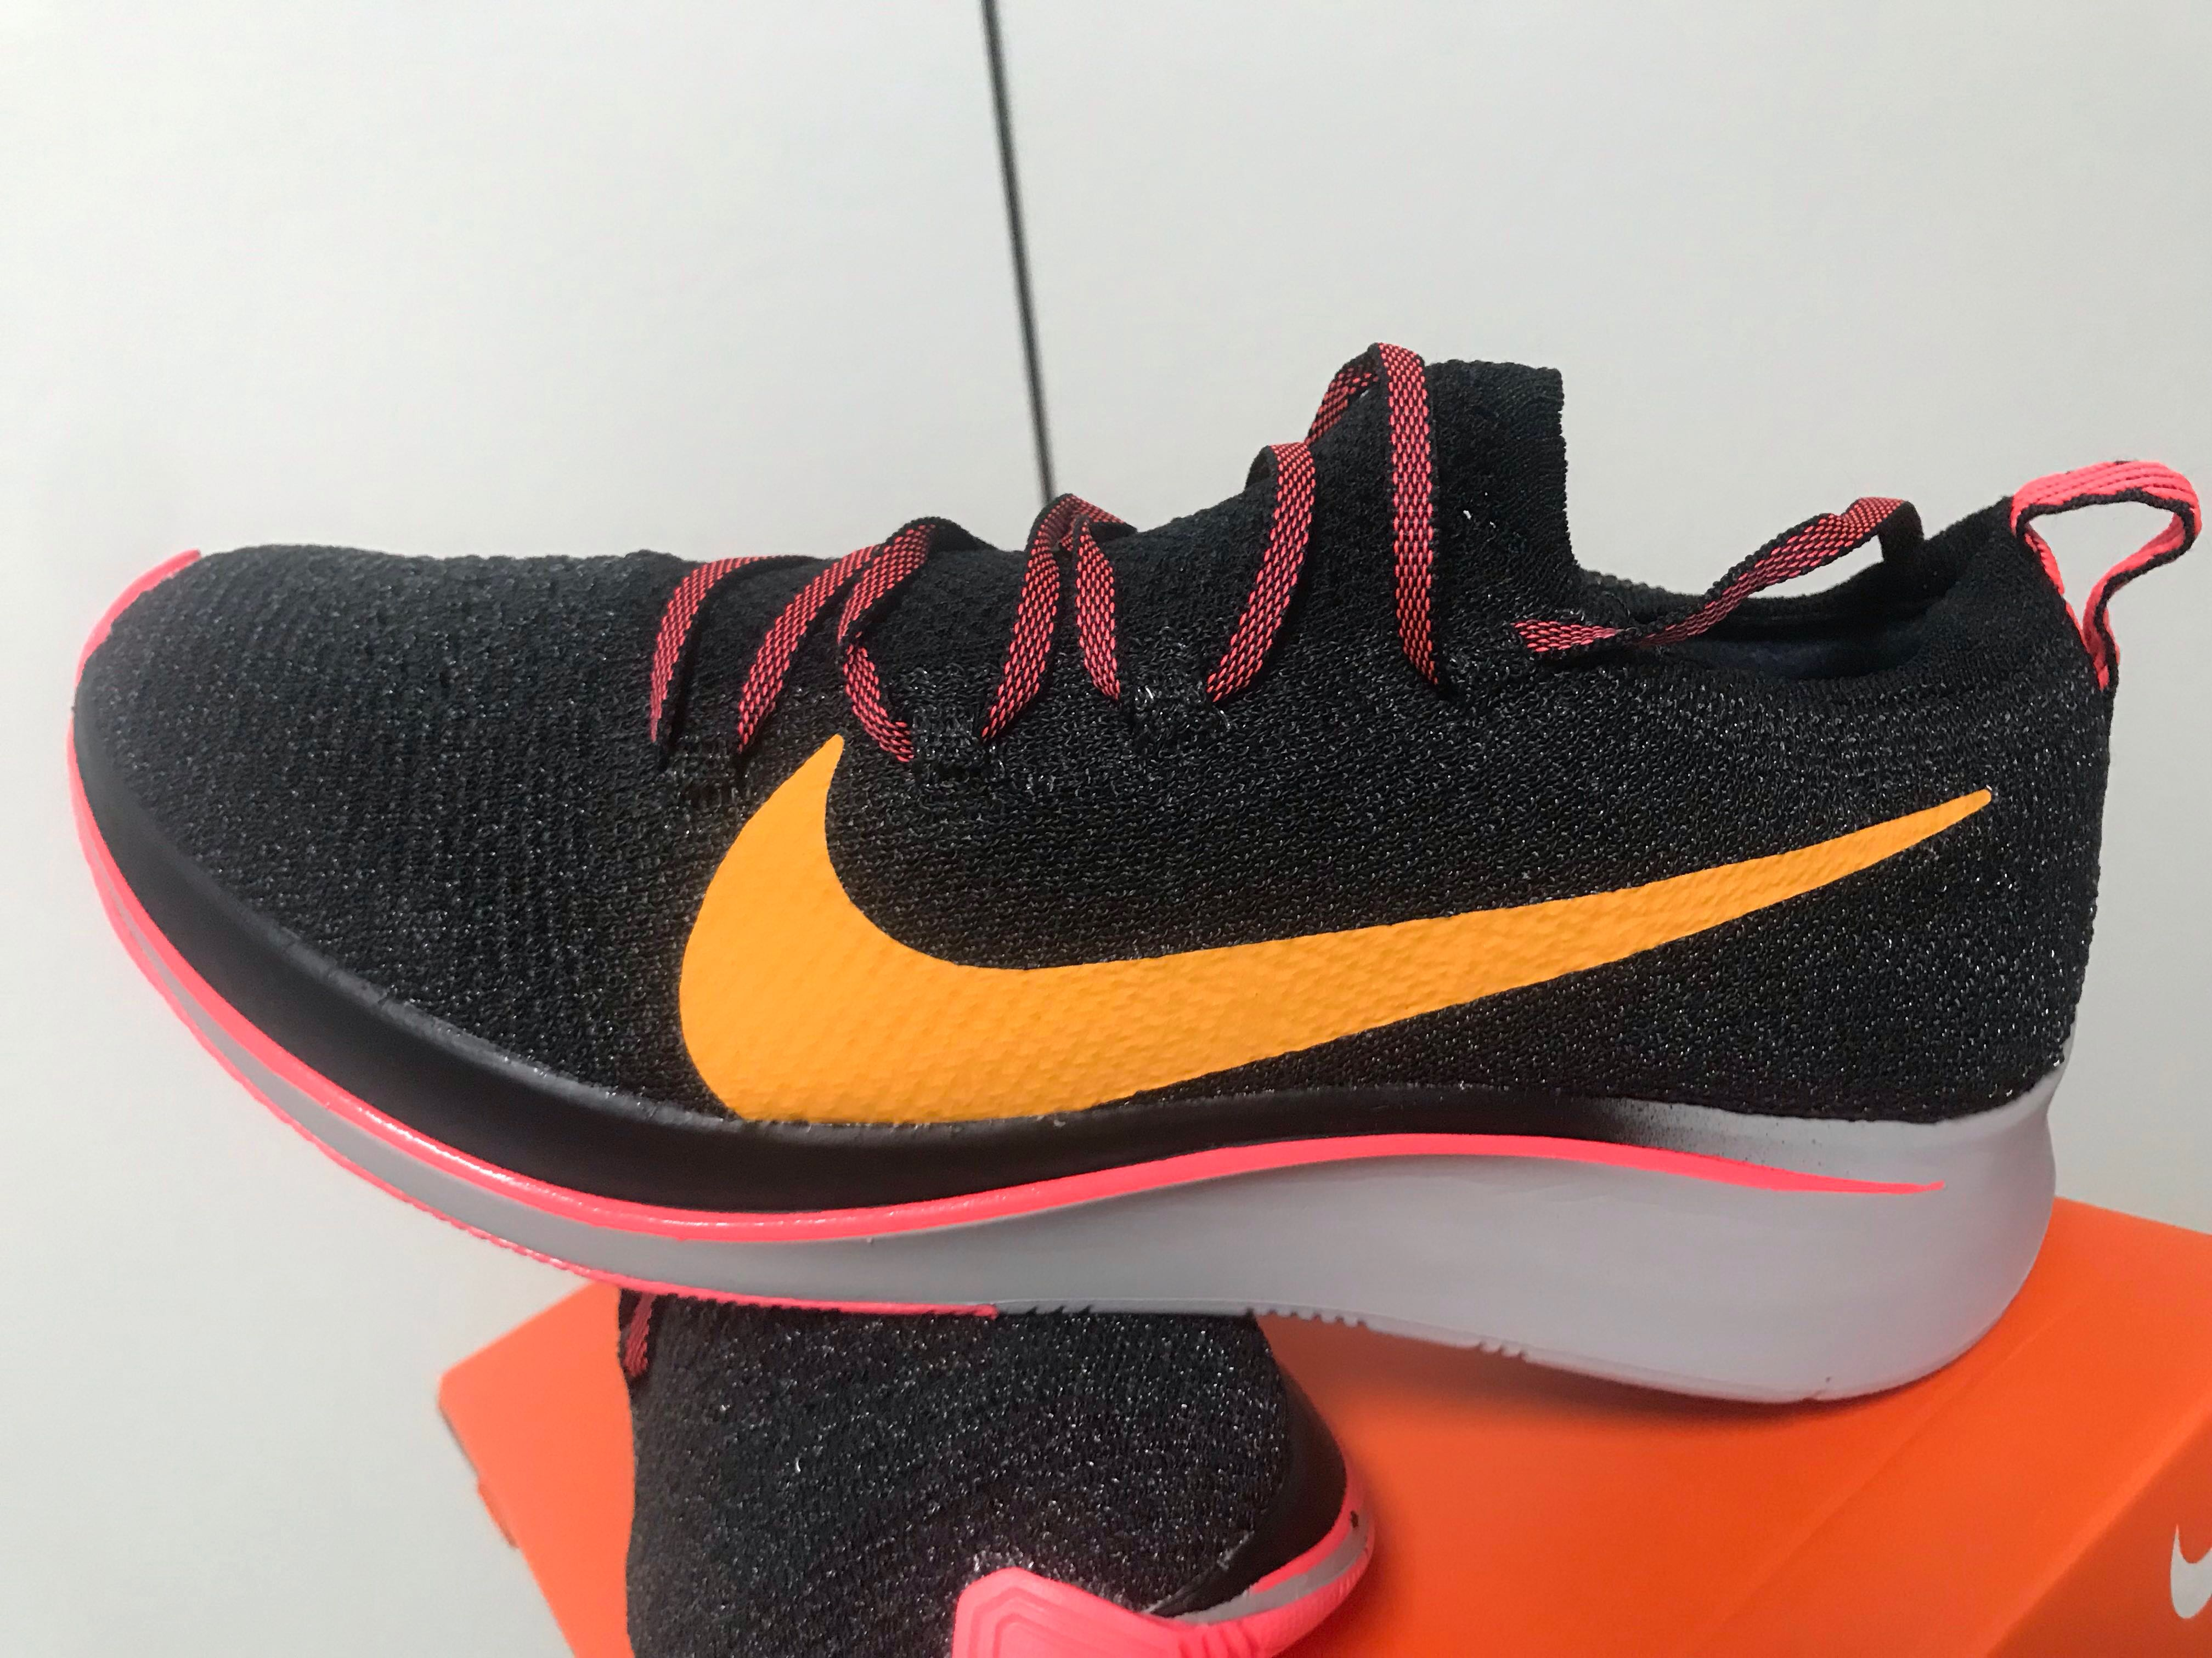 b5b23d555b723e Nike Zoom Fly Flyknit BNIB Women s US7.5 UK5 EU38.5